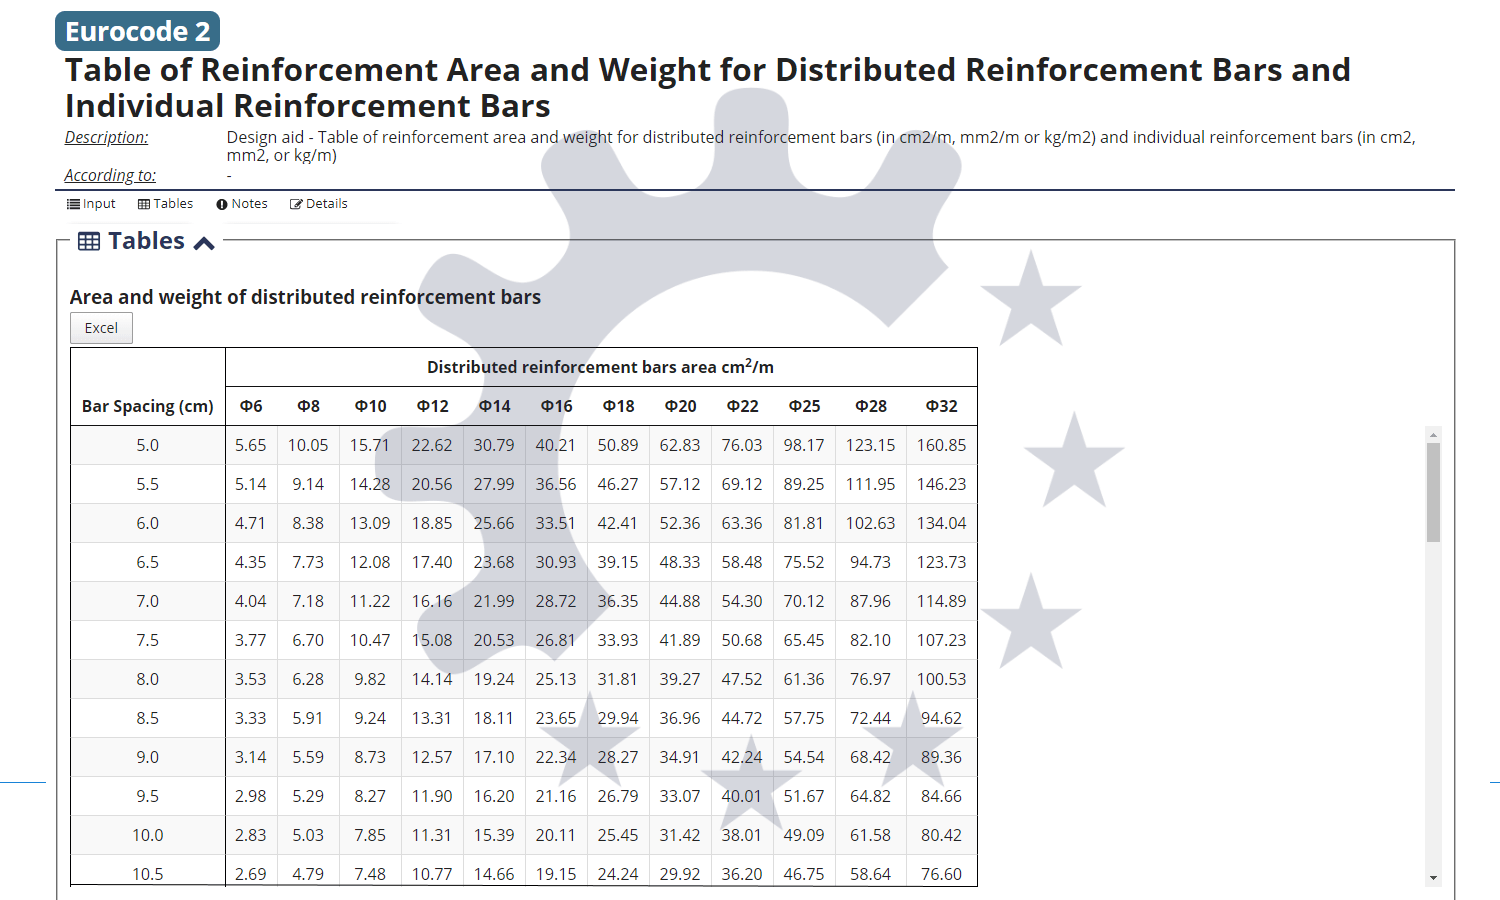 Table Of Steel Area And Weight For Distributed Reinforcement